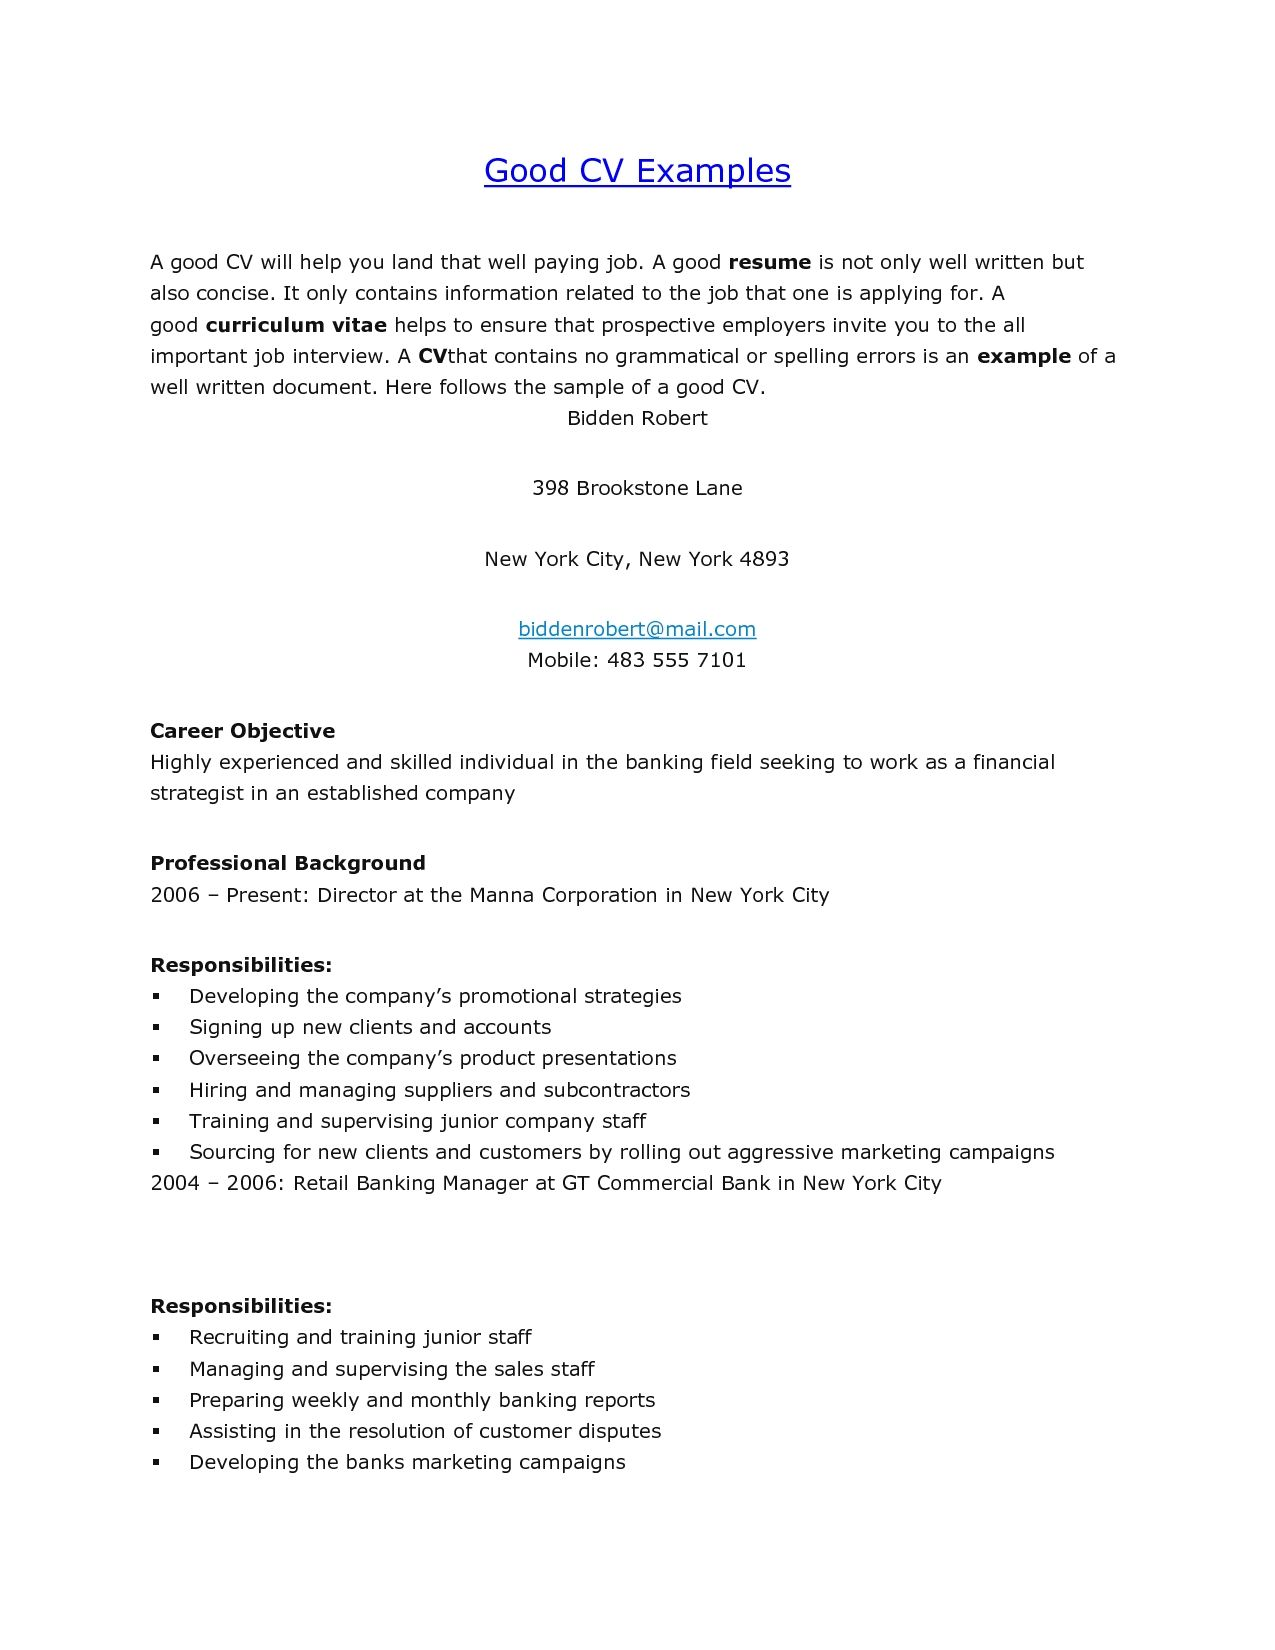 Popular Essays Writer For Hire - Vision specialist | Baseball ...